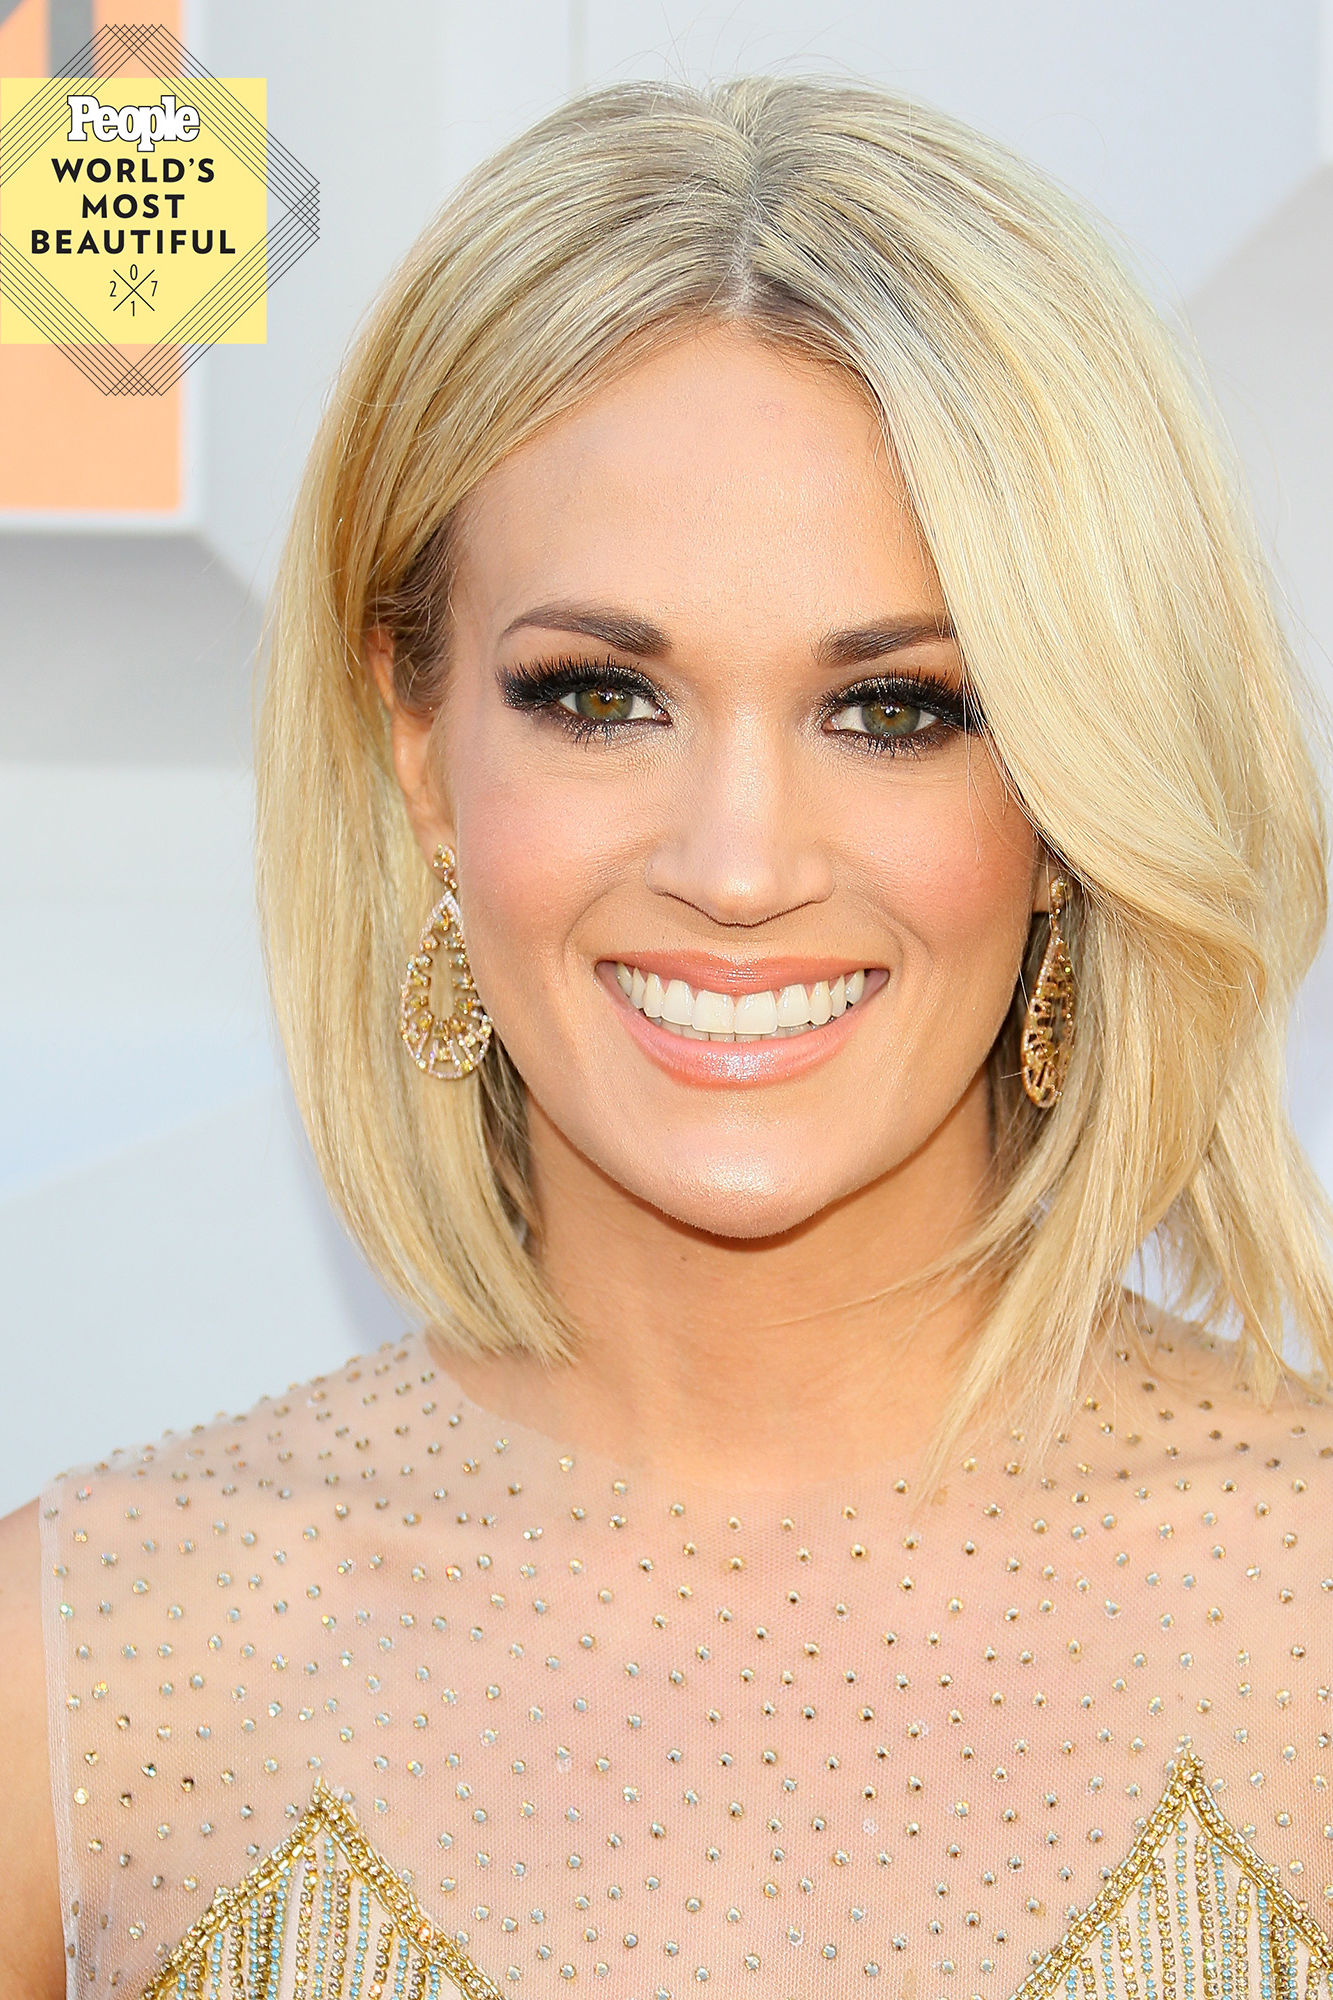 Carrie Underwood Shows Full Face for First Time at Rehearsal: Will She Perform at ACMs?